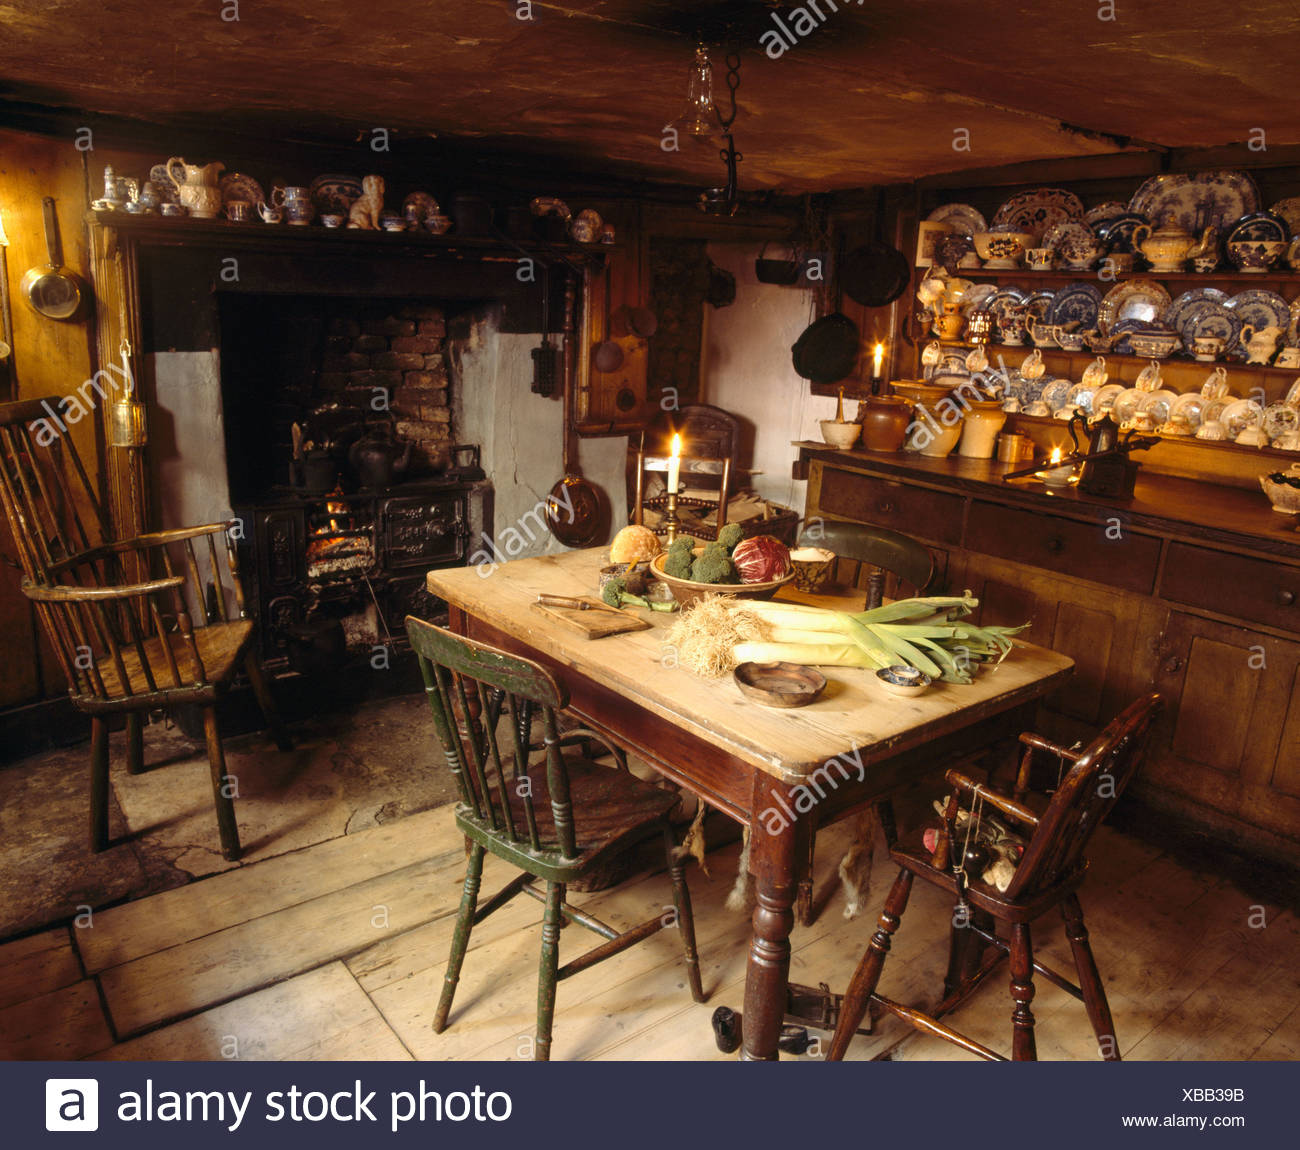 Old pine table and dresser in old-fashioned kitchen dining room with antique  Windsor chair beside fireplace with lighted fire - Old Pine Table And Dresser In Old-fashioned Kitchen Dining Room With